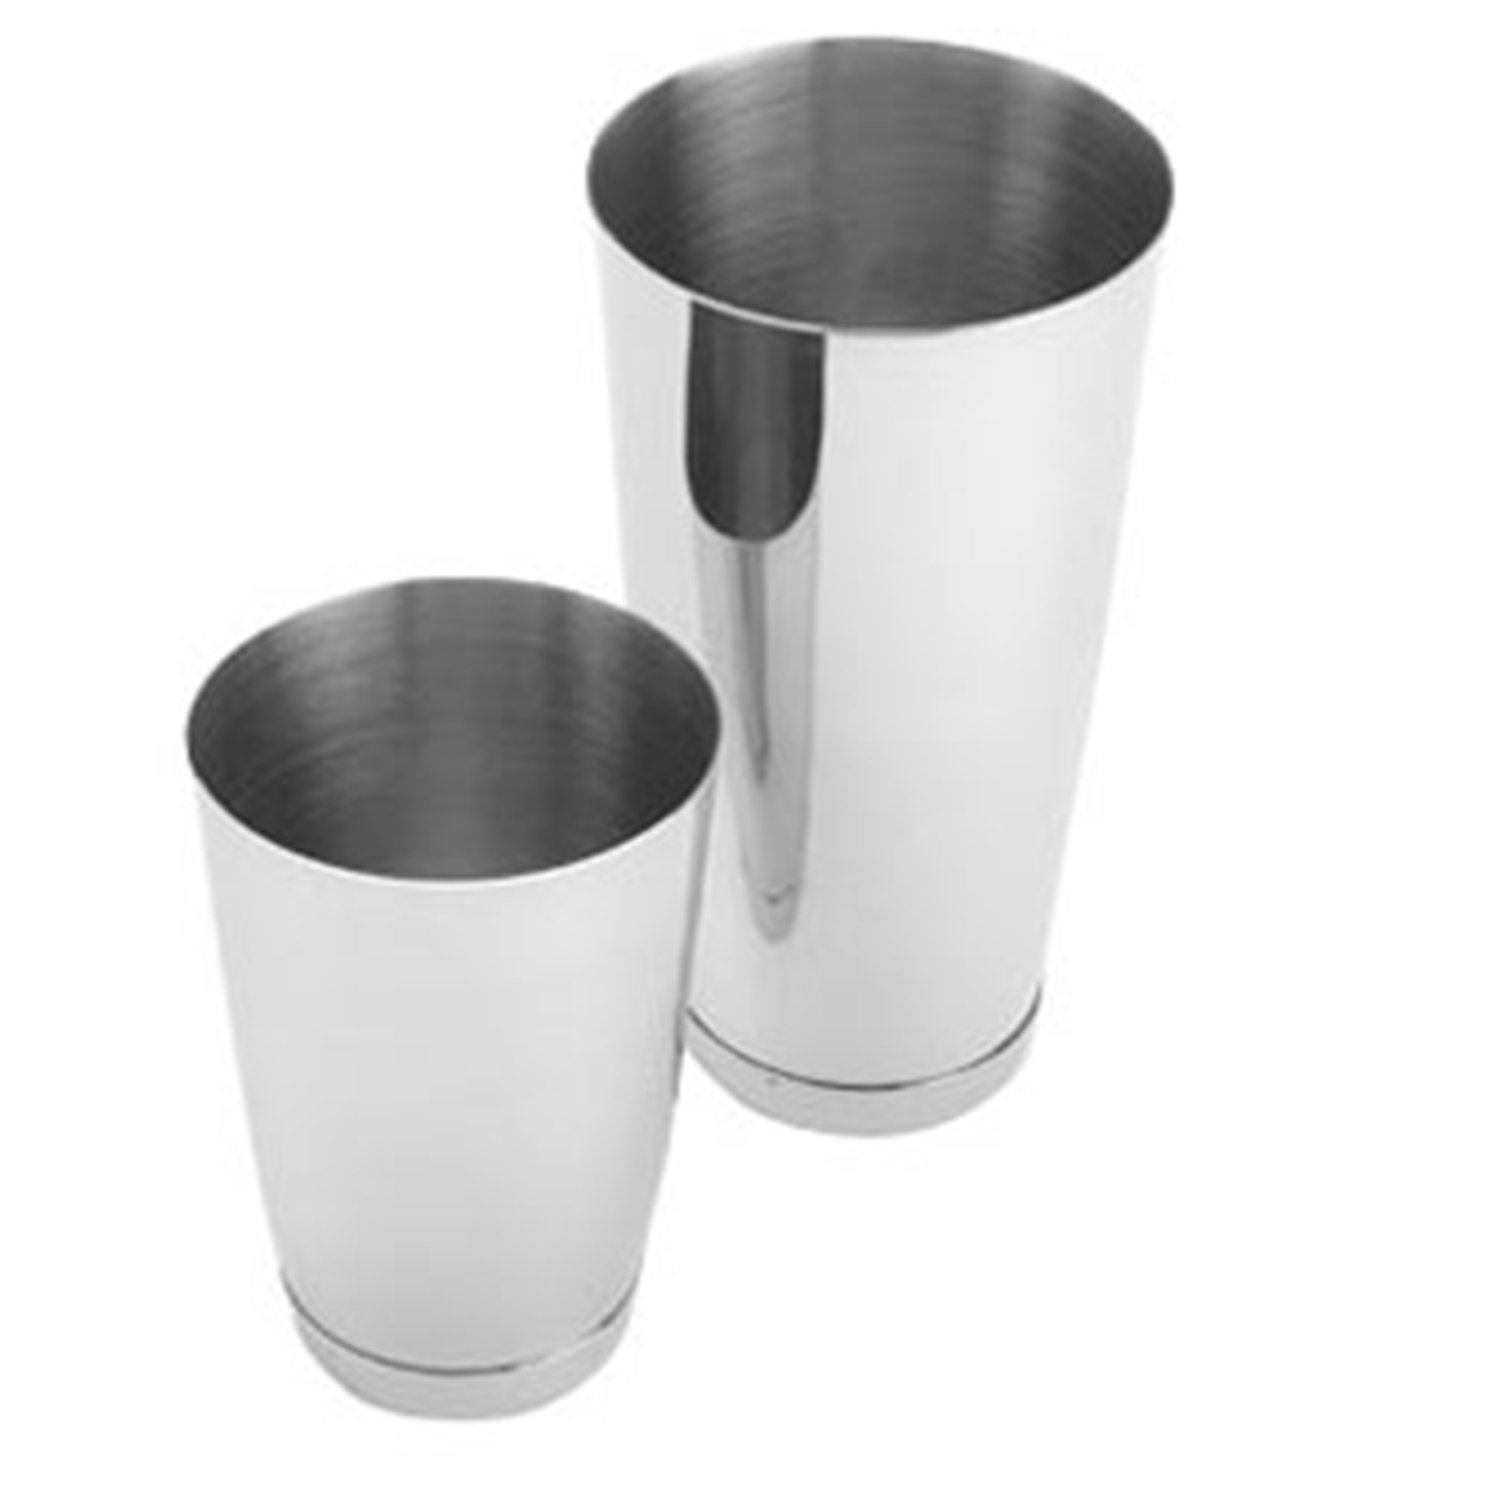 Cocktail Shaker Set of 2, Stainless Steel, 15 oz. and 30 oz. Heavy Weighted Shaker to keep Perfect balance